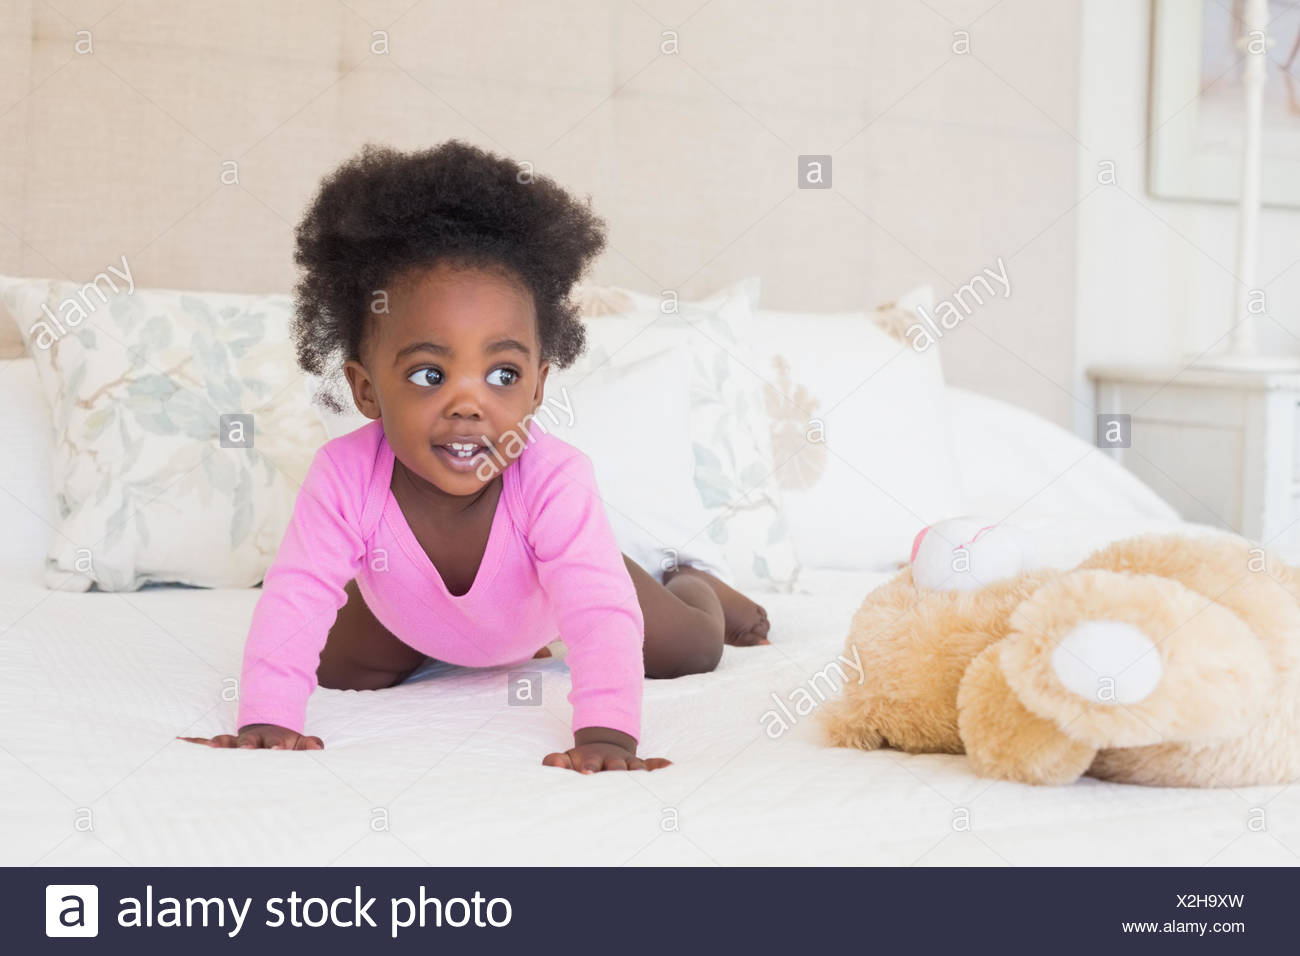 Baby girl in pink babygro crawling on bed - Stock Image